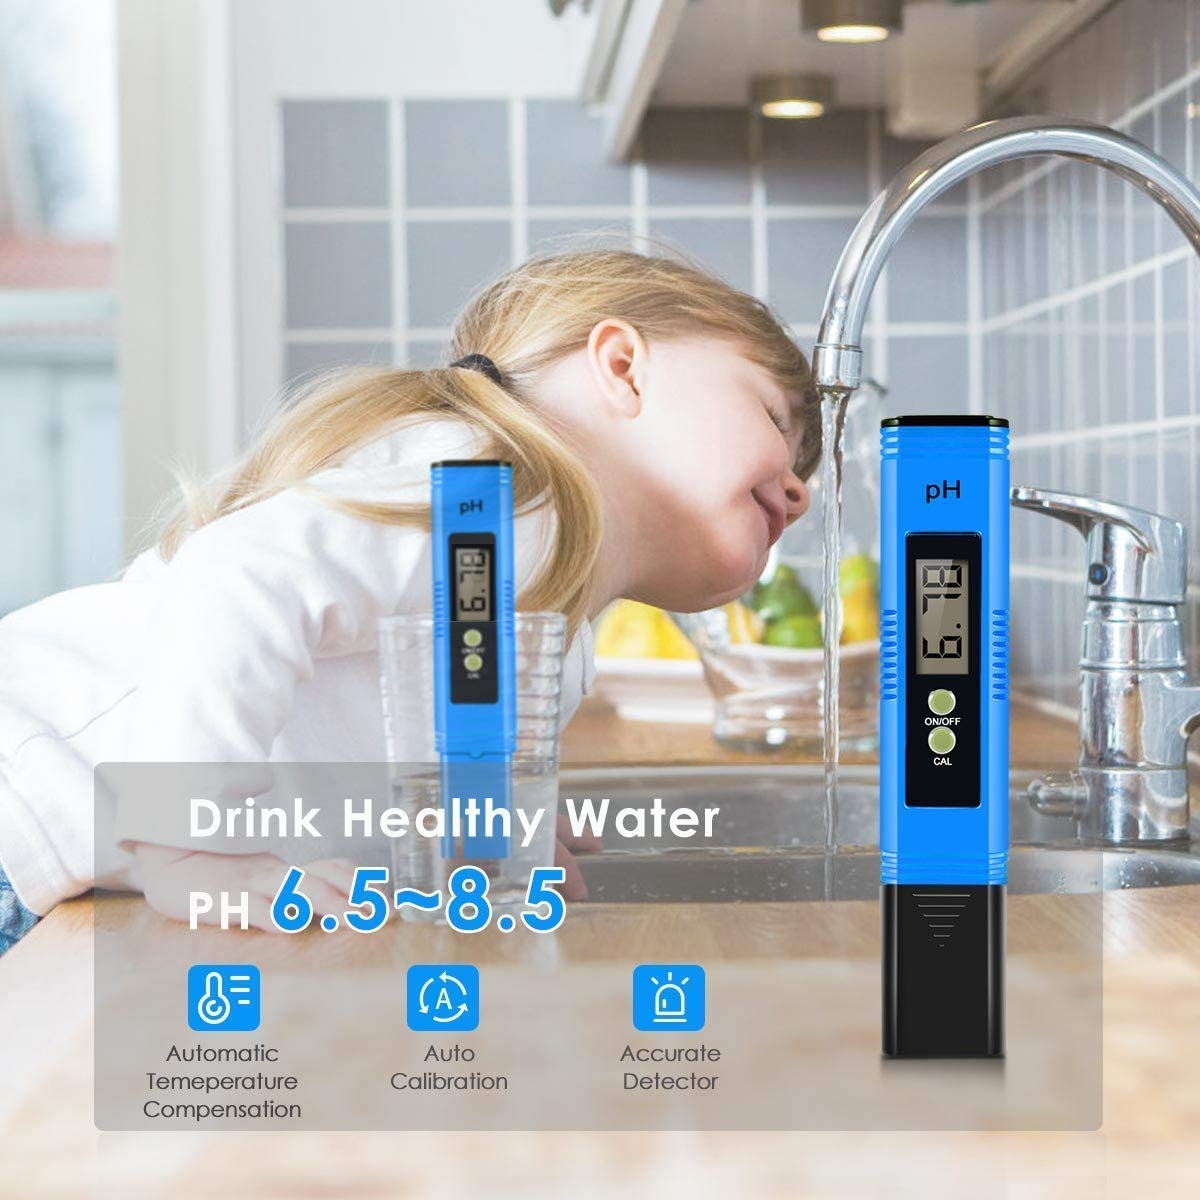 GDMONIN PH Meter Aquariums Swimming Pools with ATC Accurate and Reliable Digital PH Meter 0-14 PH for Hydroponics Drinking Water